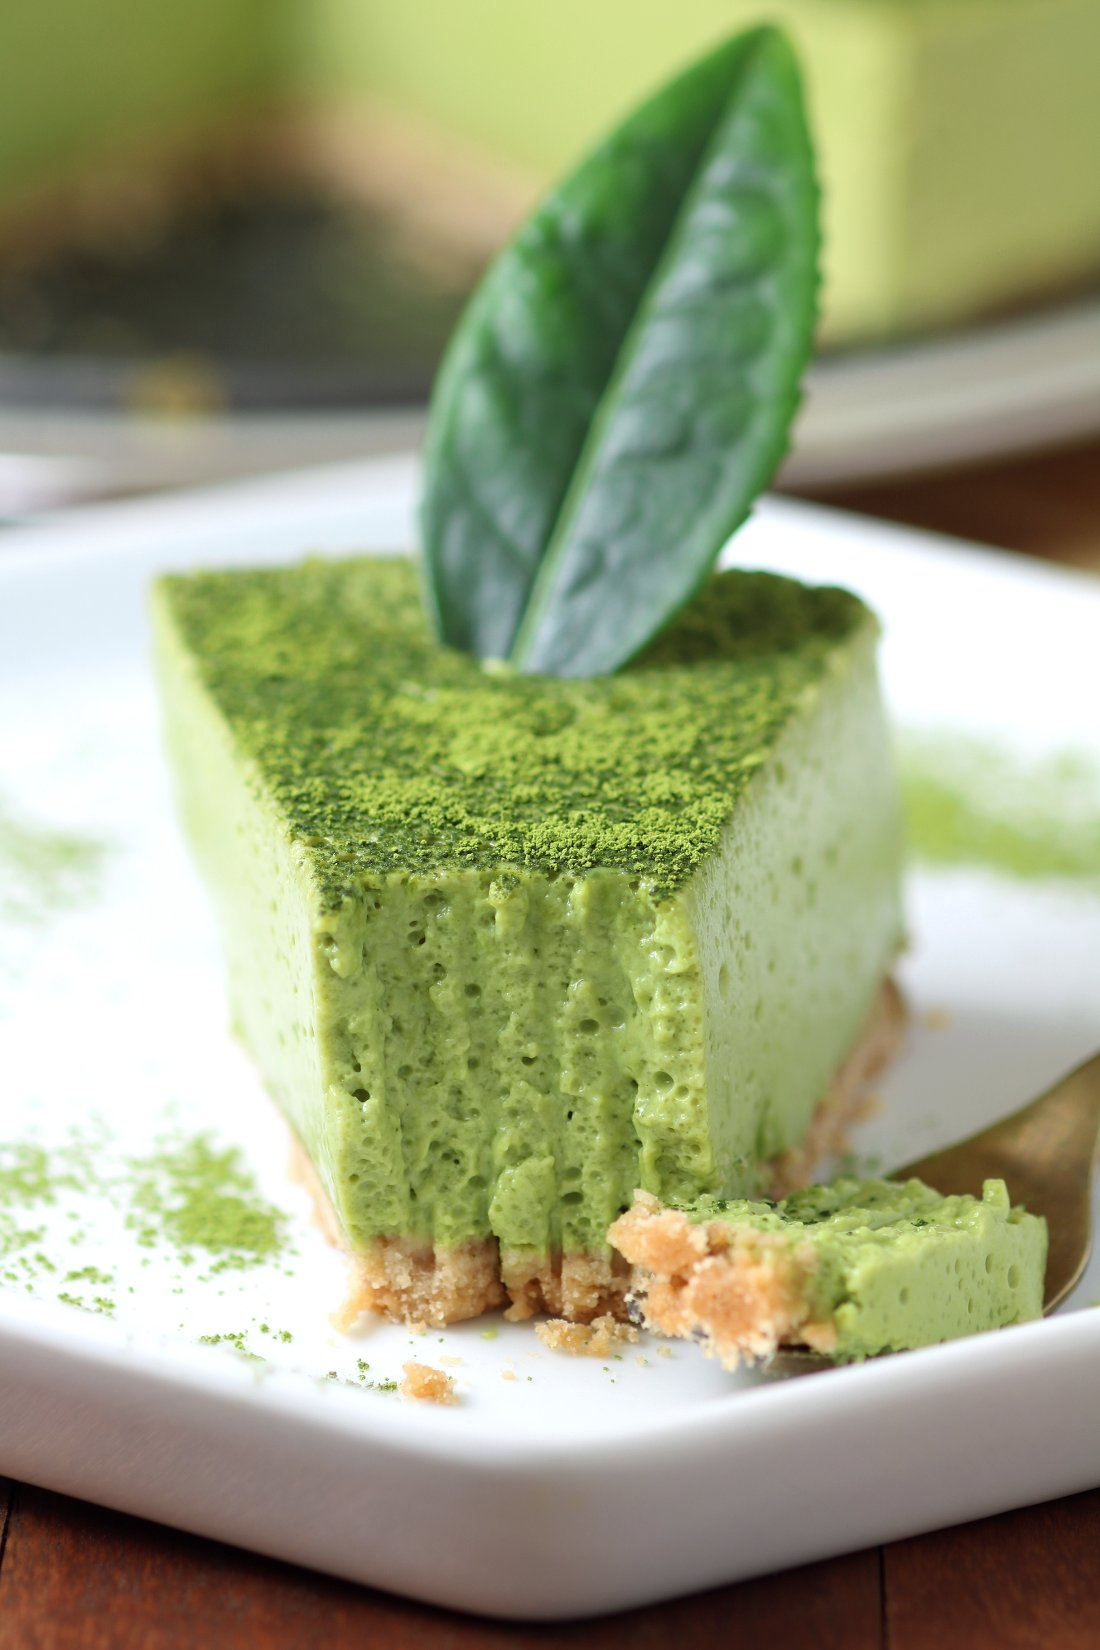 A creamy Vegan Matcha Mousse Cake with an airy, whipped texture flavored with the complex taste of Japanese matcha green tea powder.